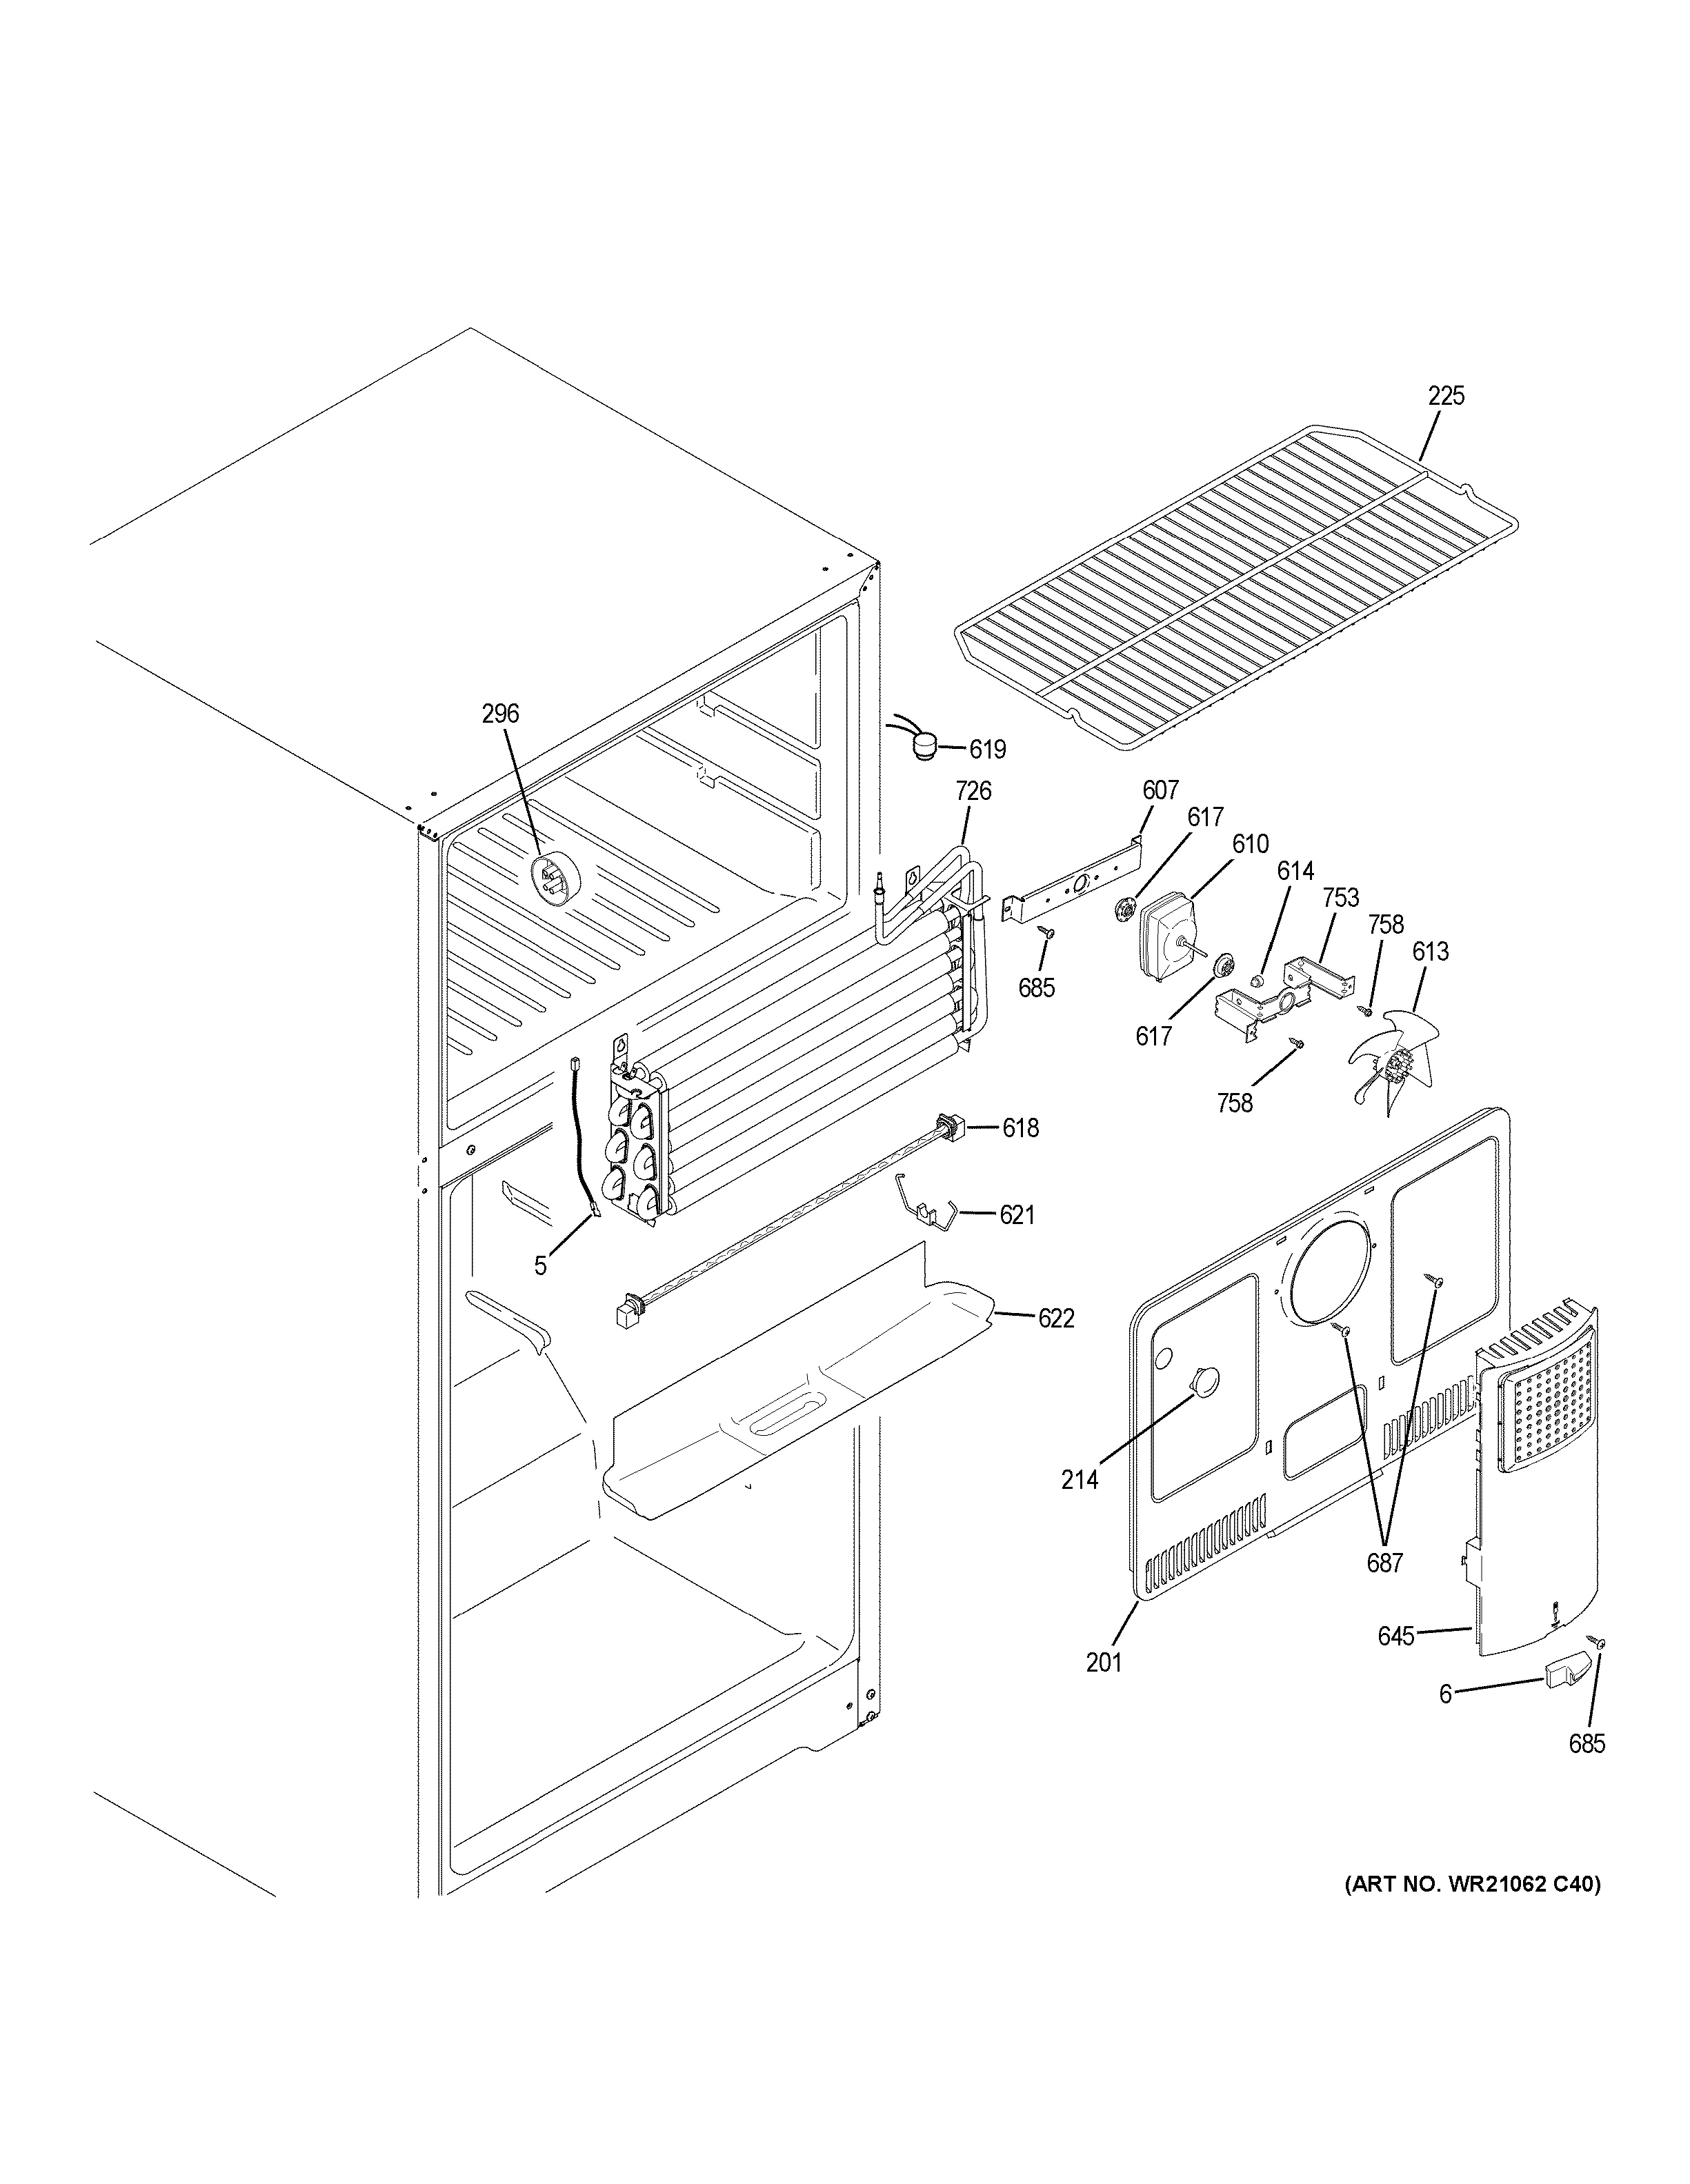 Assembly View For Freezer Section